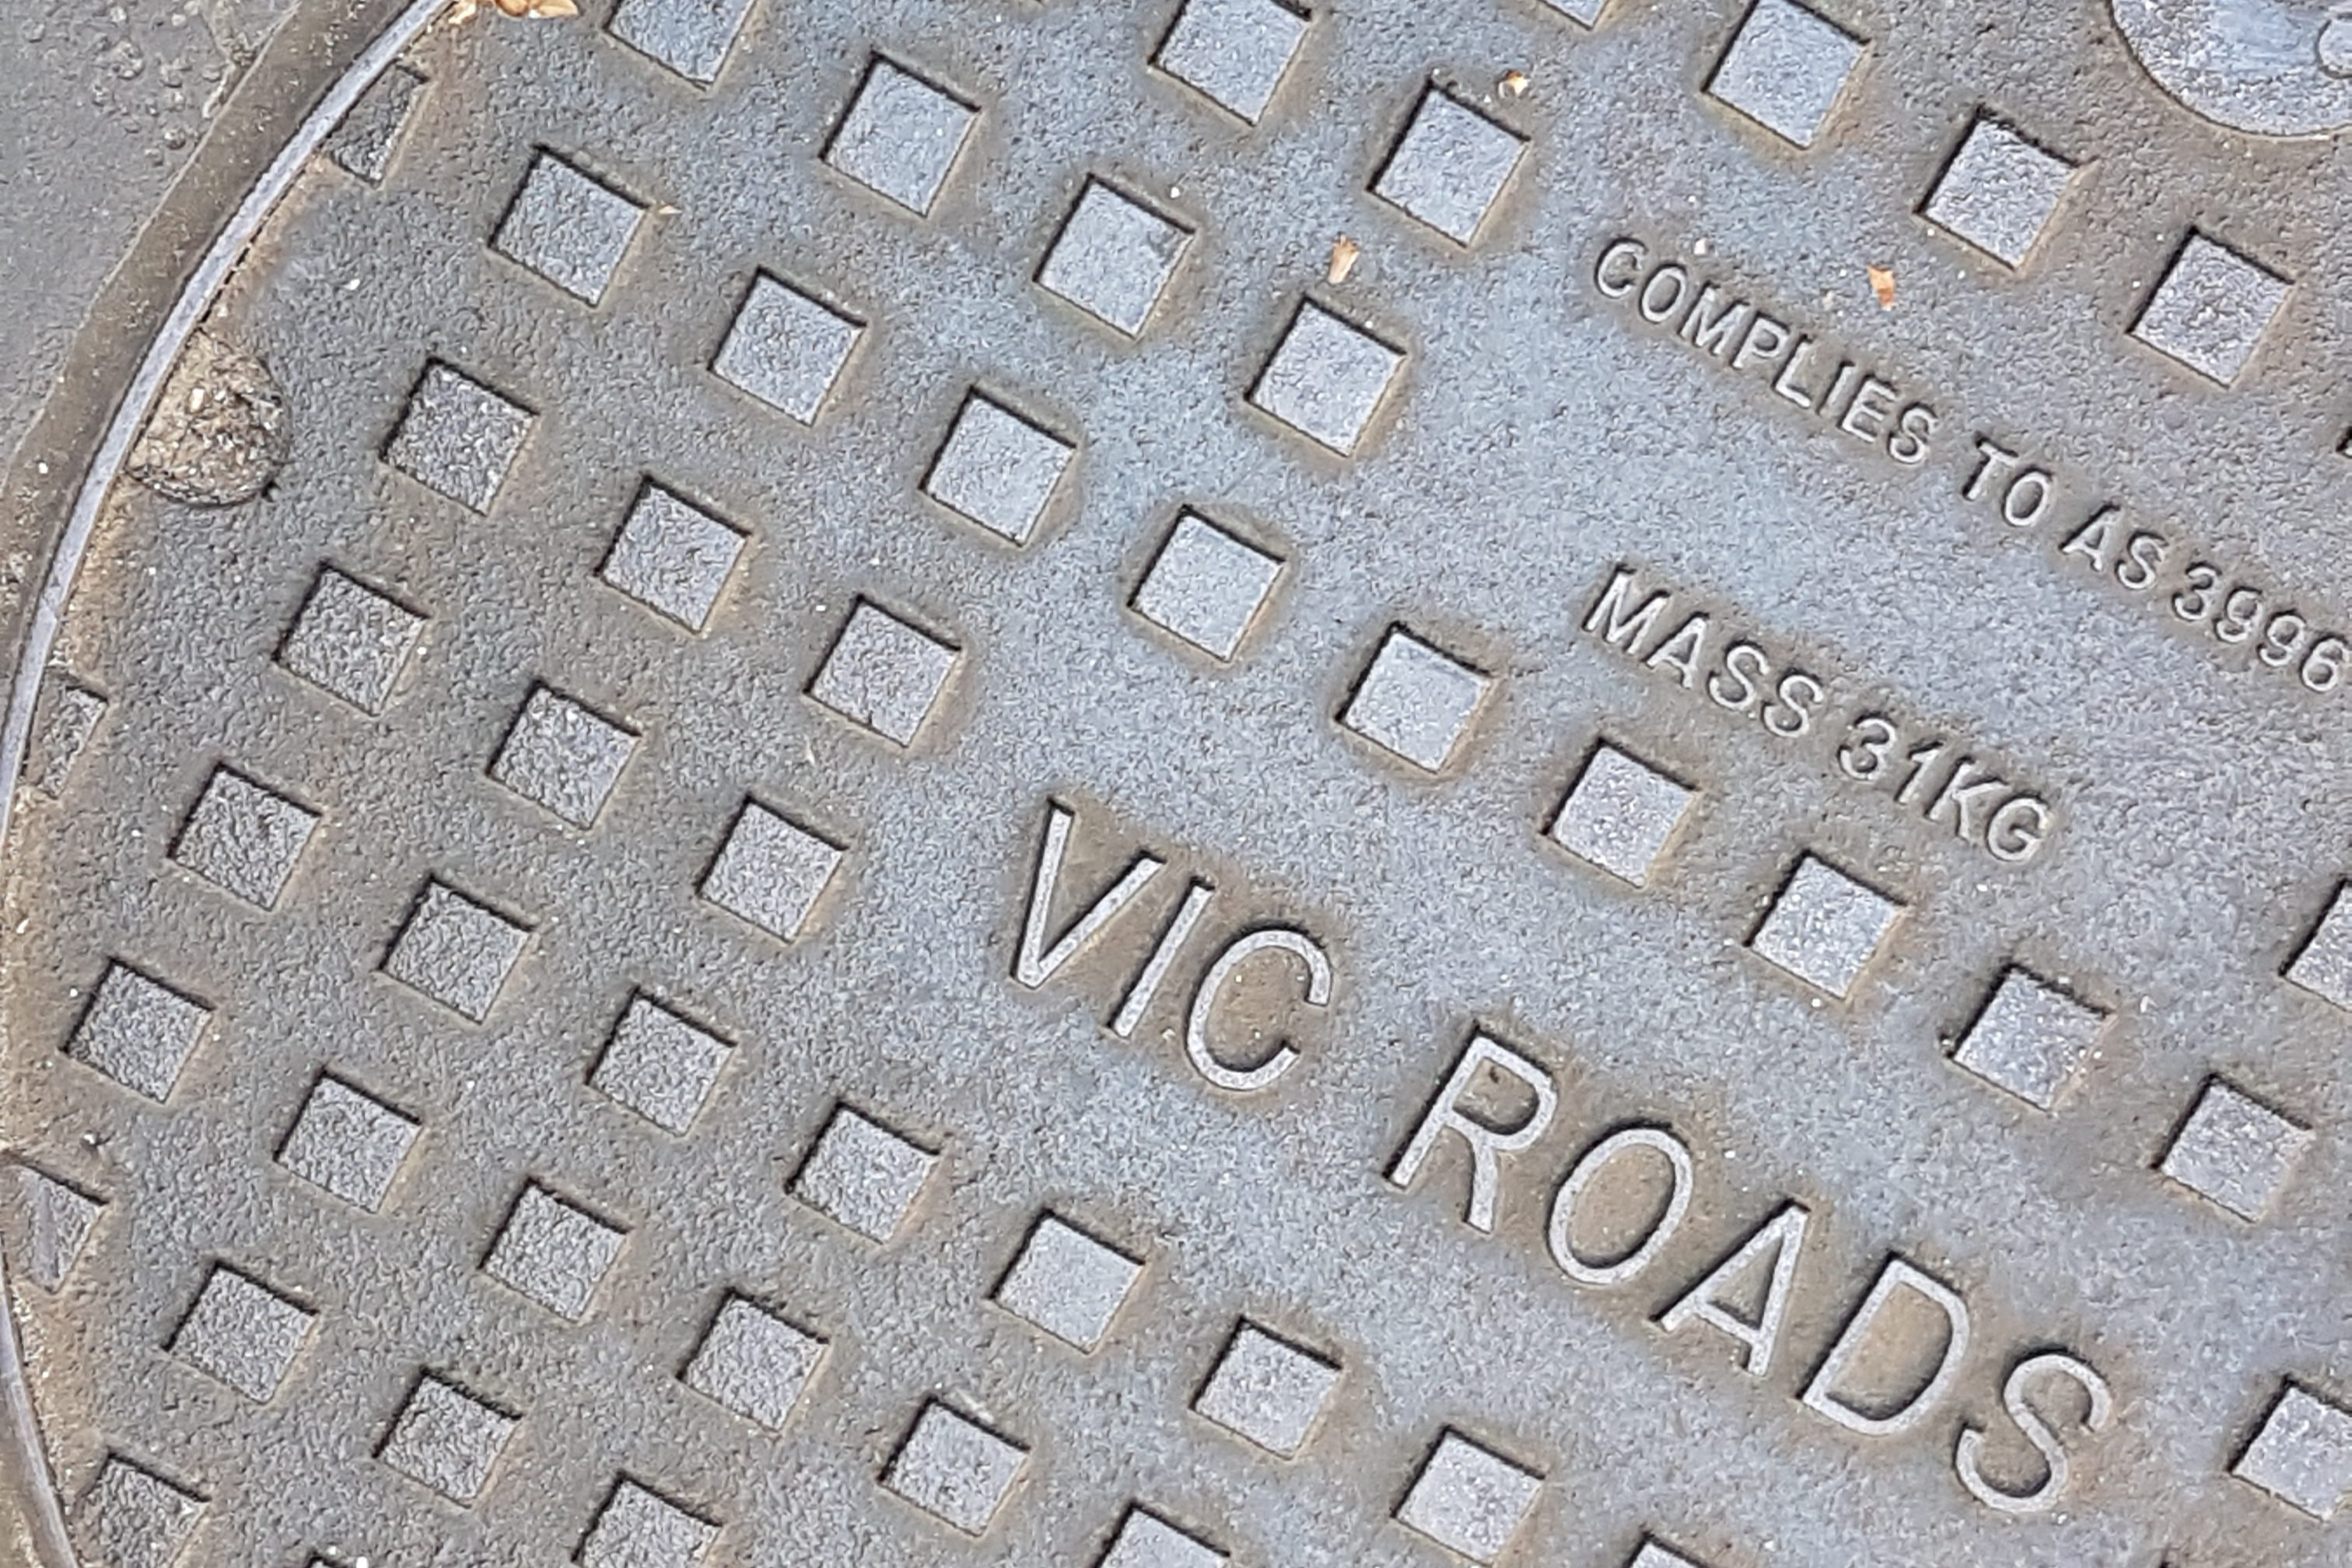 Manholes of Melbourne